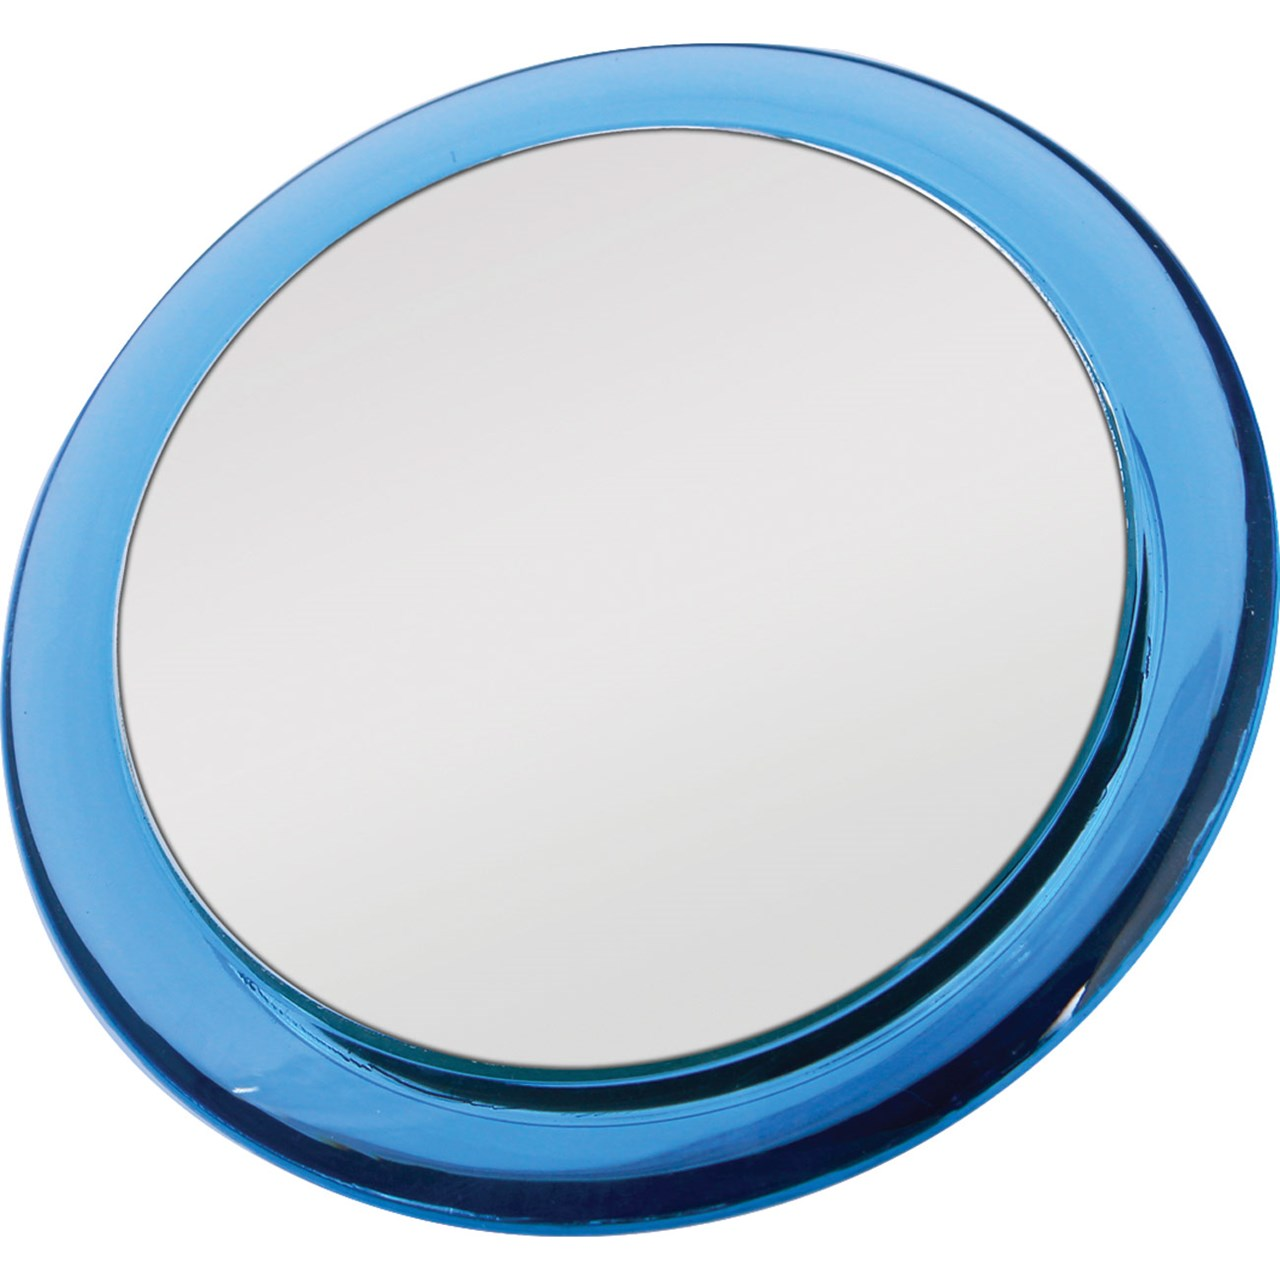 Maxiaids Compact Magnifying Spot Mirror 5x 1x